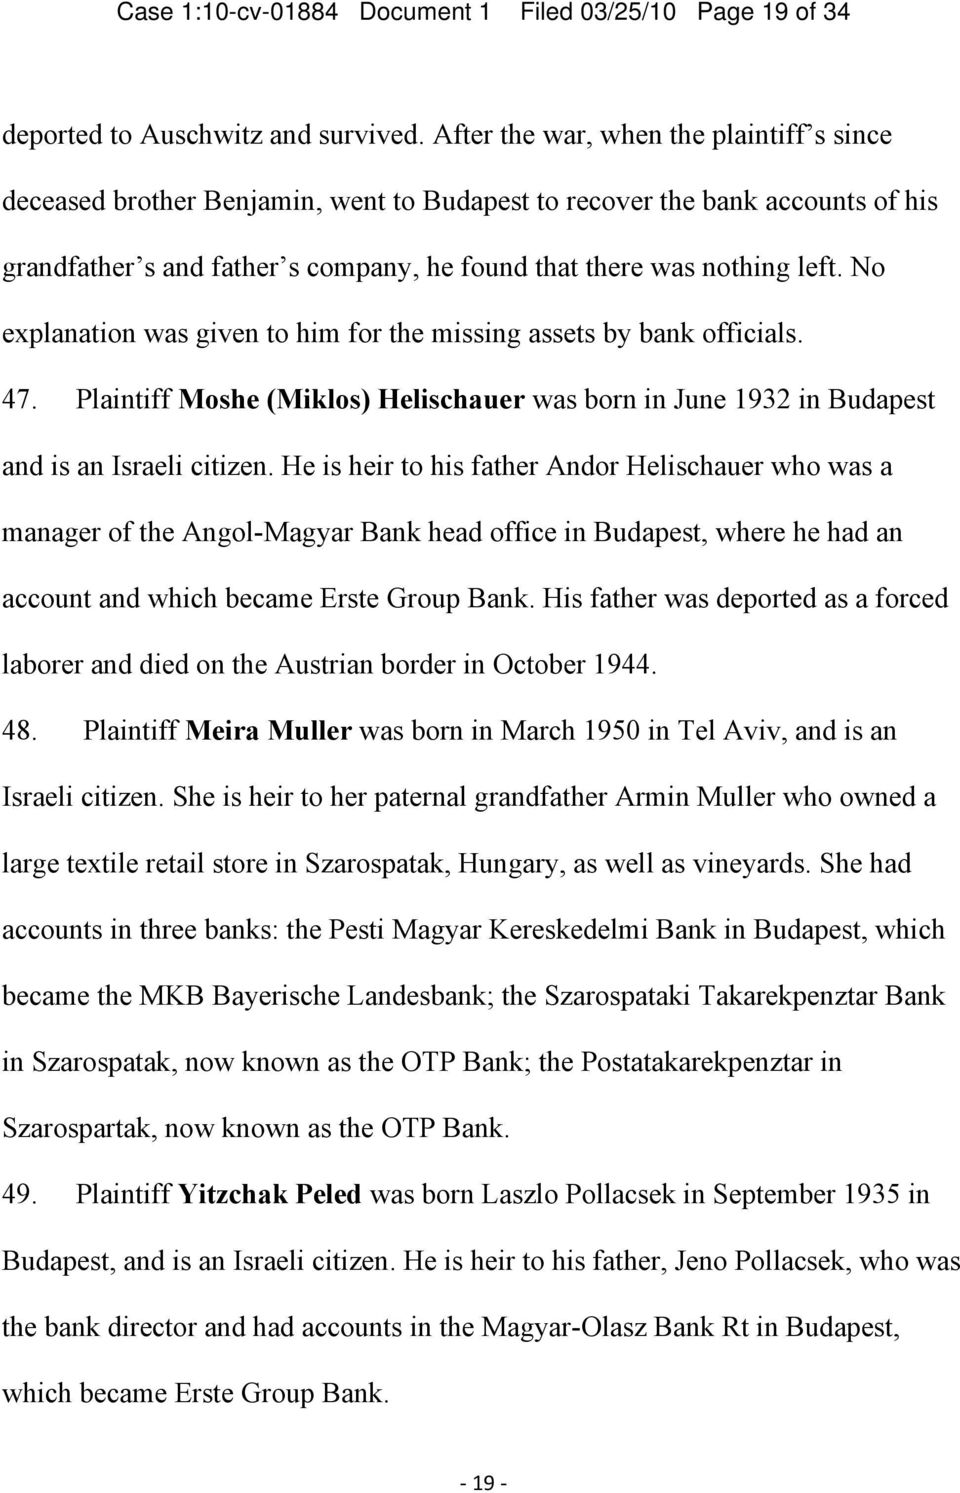 No explanation was given to him for the missing assets by bank officials. 47. Plaintiff Moshe (Miklos) Helischauer was born in June 1932 in Budapest and is an Israeli citizen.